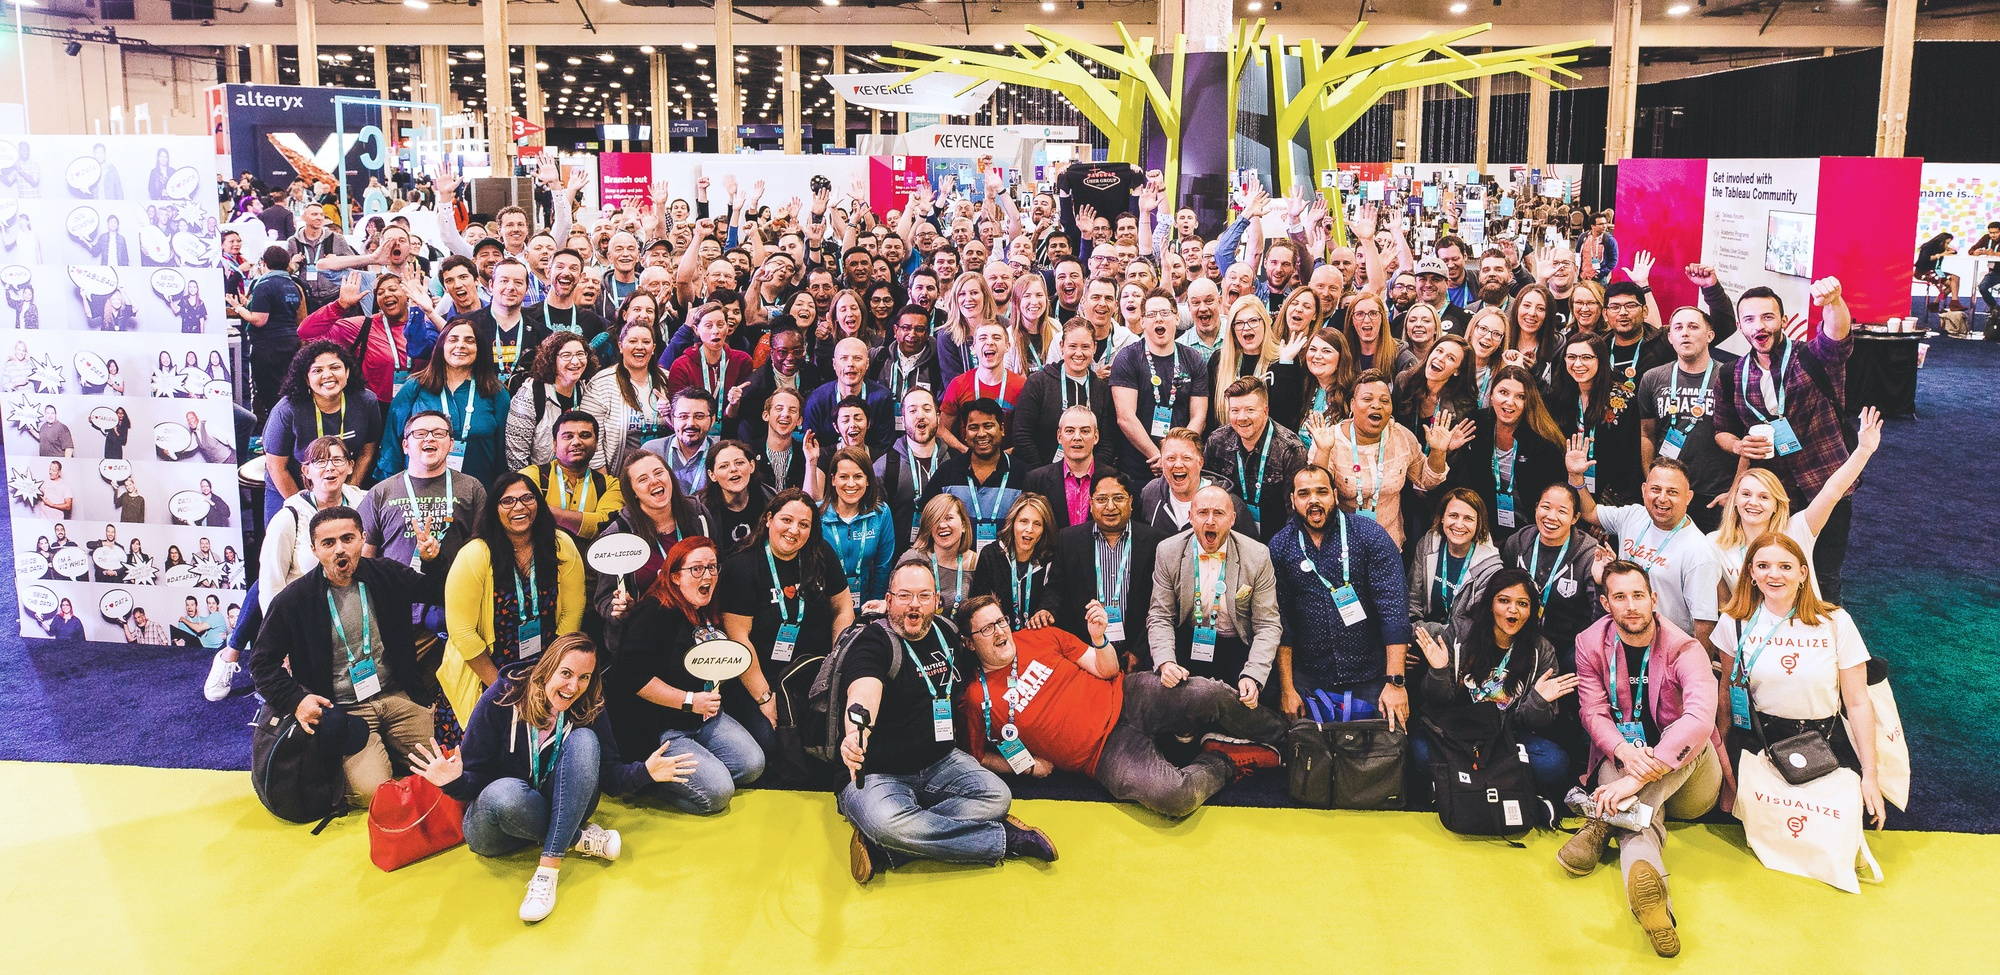 Tableau Community Group Photo at TC